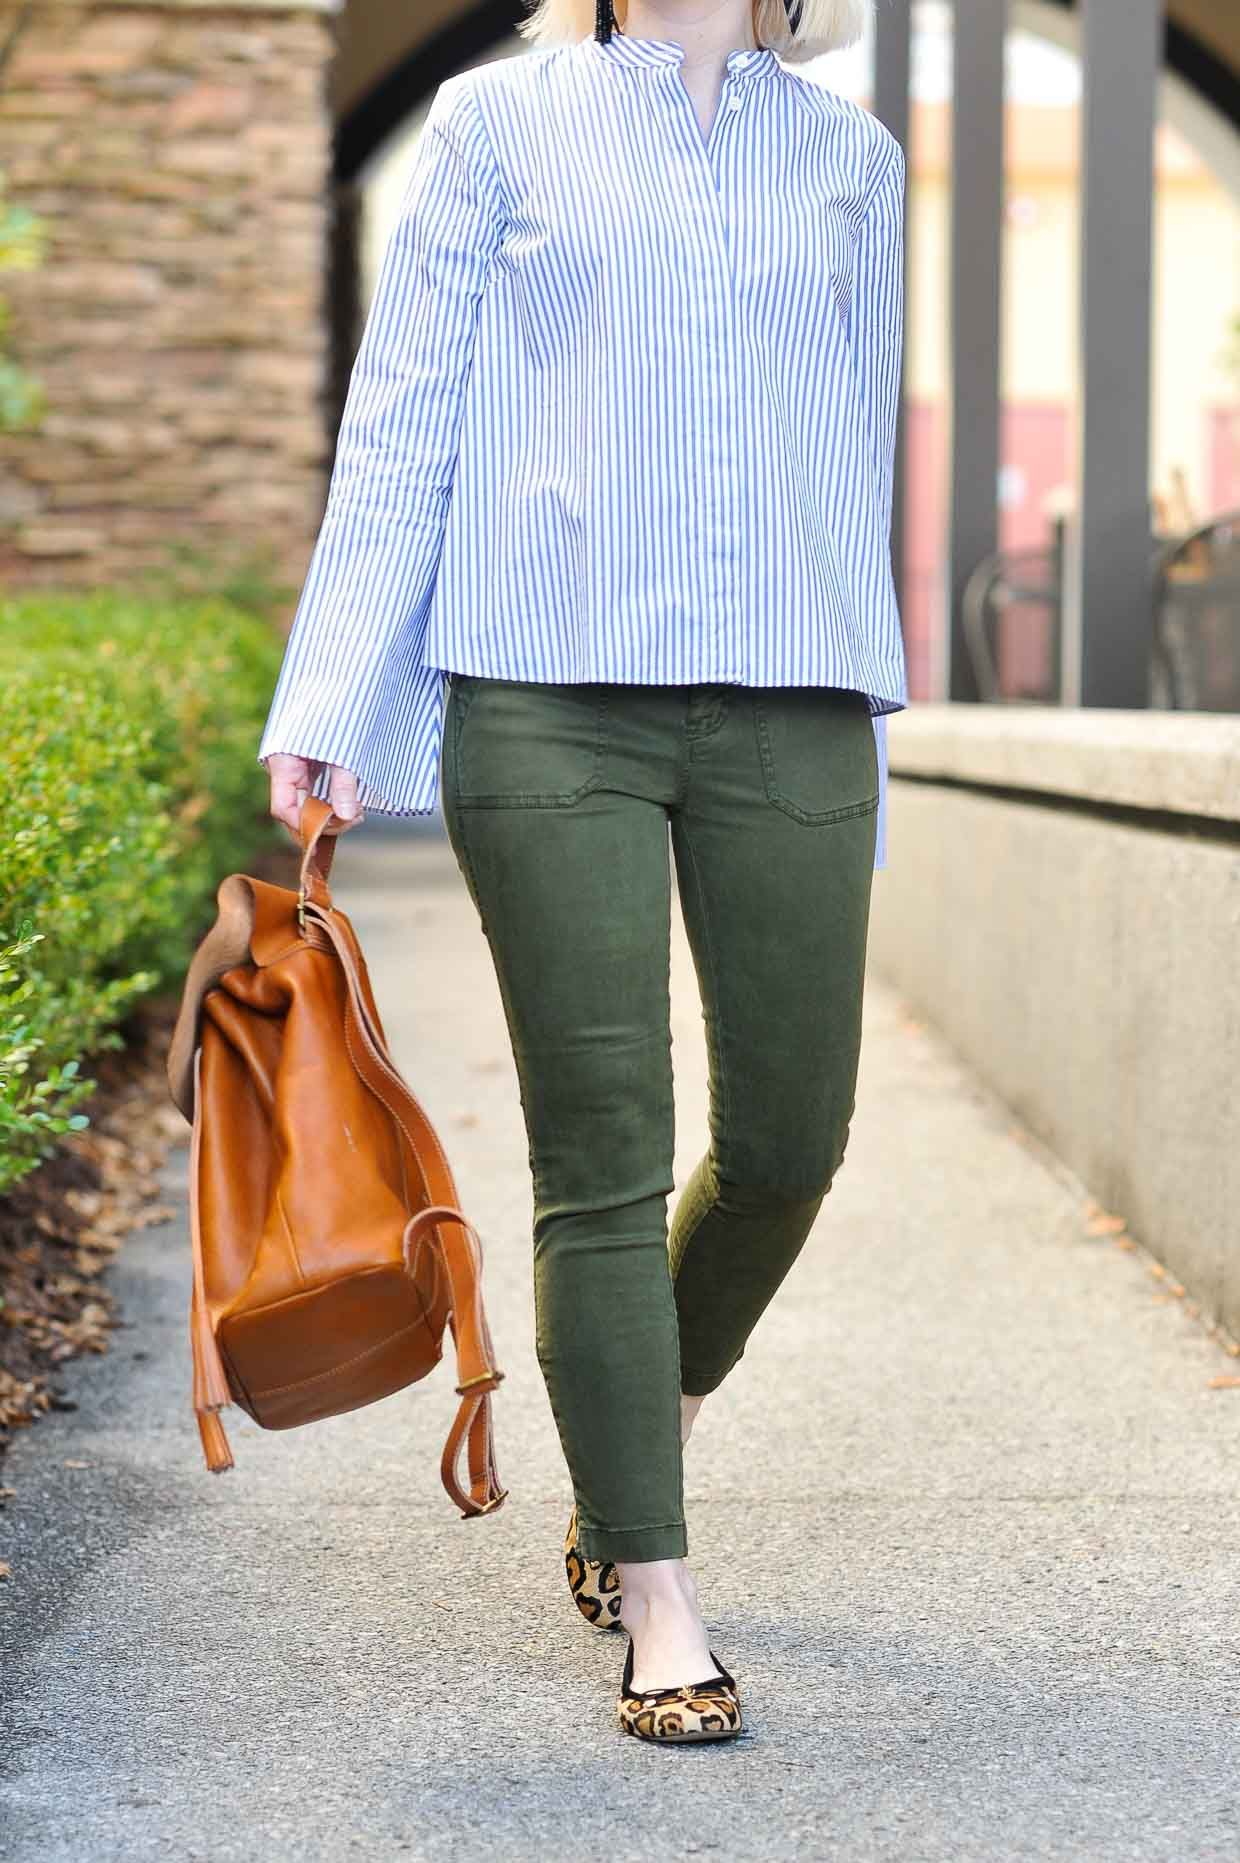 749c9ee819ba Cathy dresses up a casual favorite and shows How To Style J.Crew Green  Cargo Pants with pretty blue stripes and leopard flats for spring!